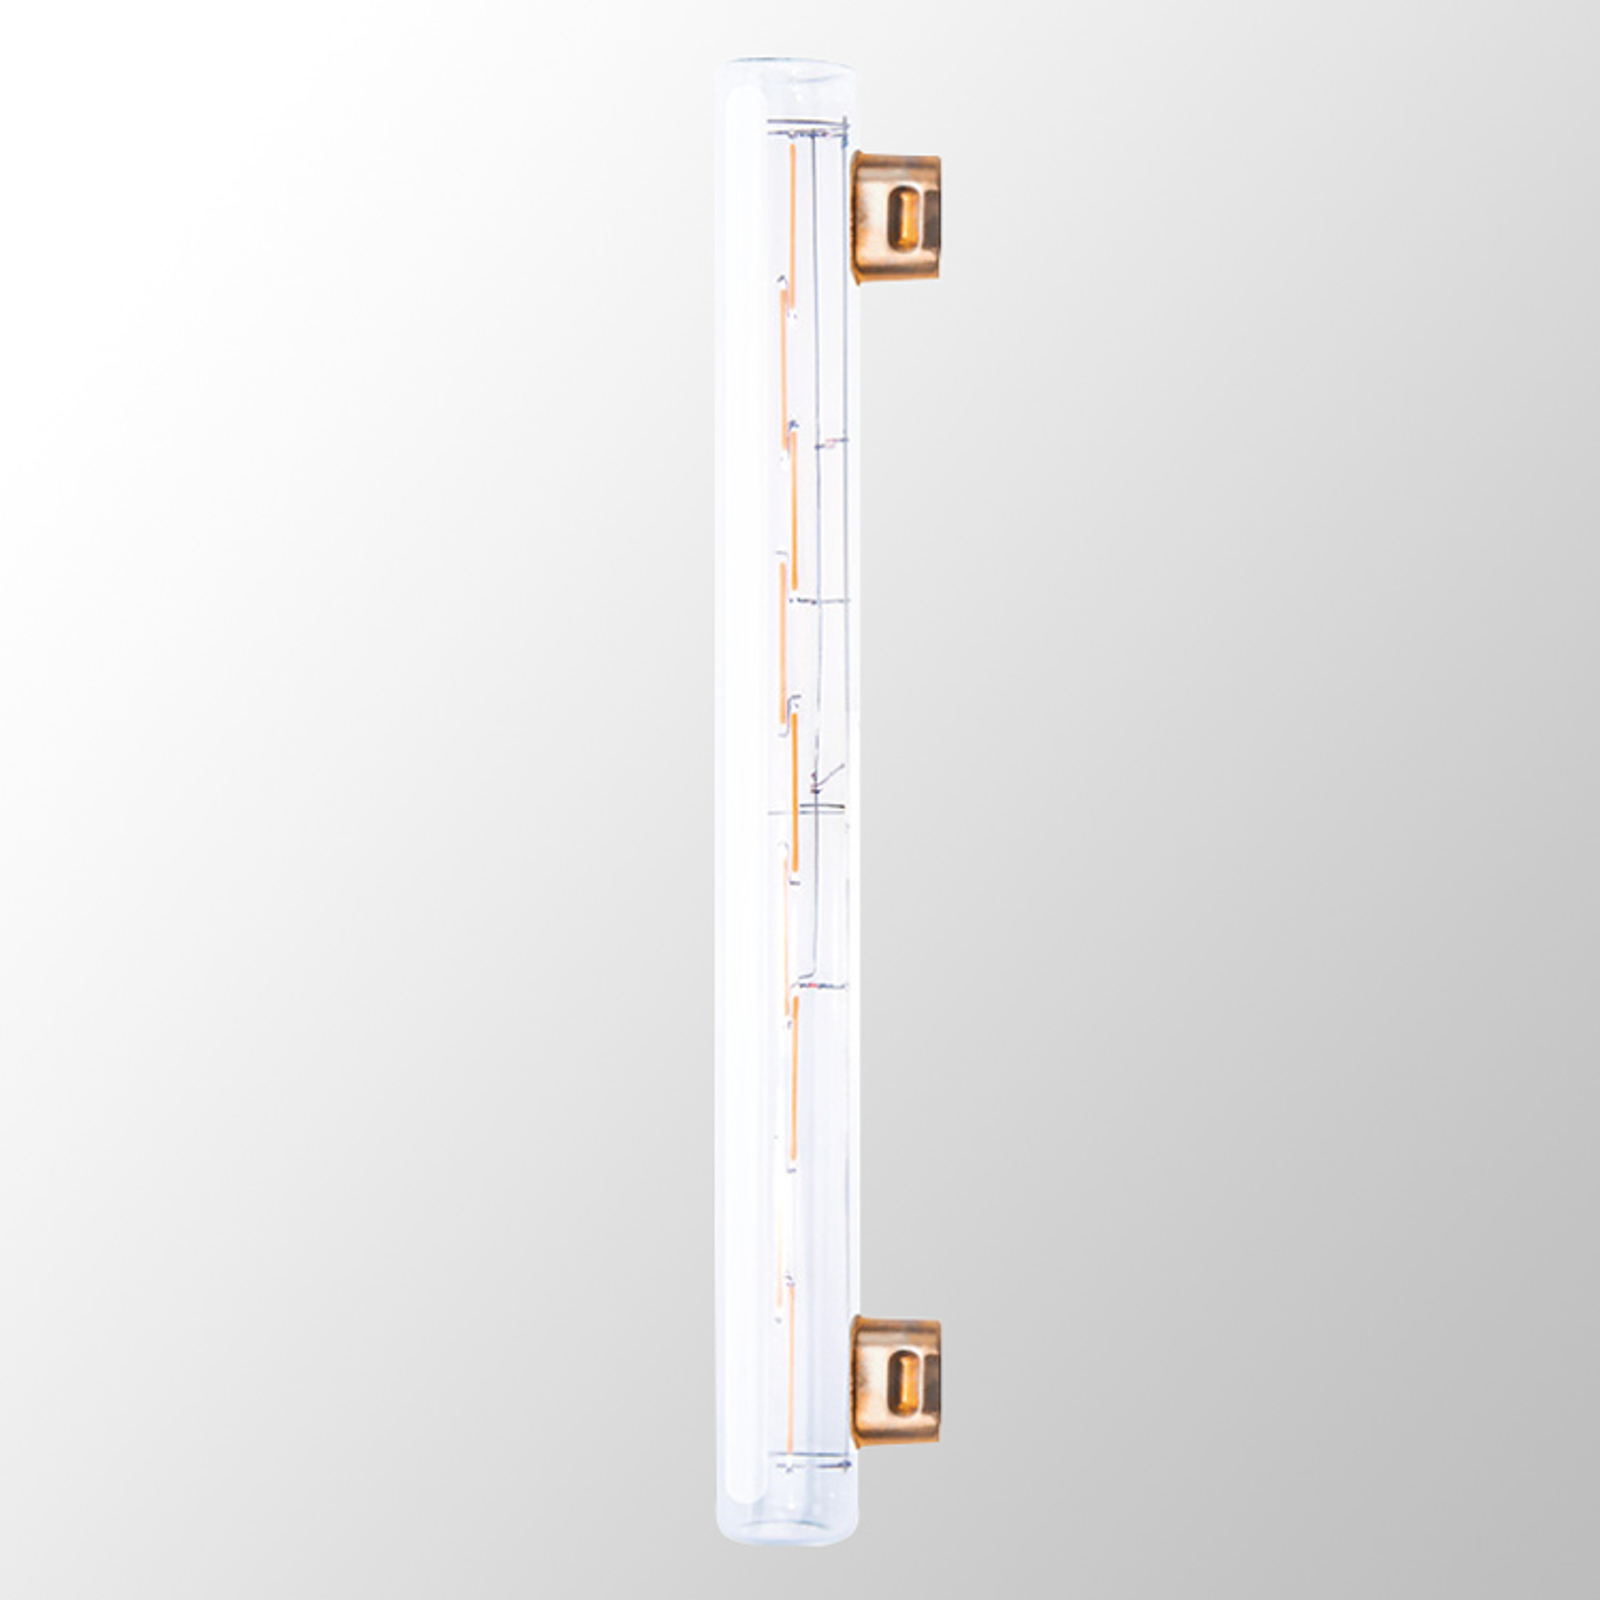 S14s 8W 922 LED-Linienlampe, 300 mm